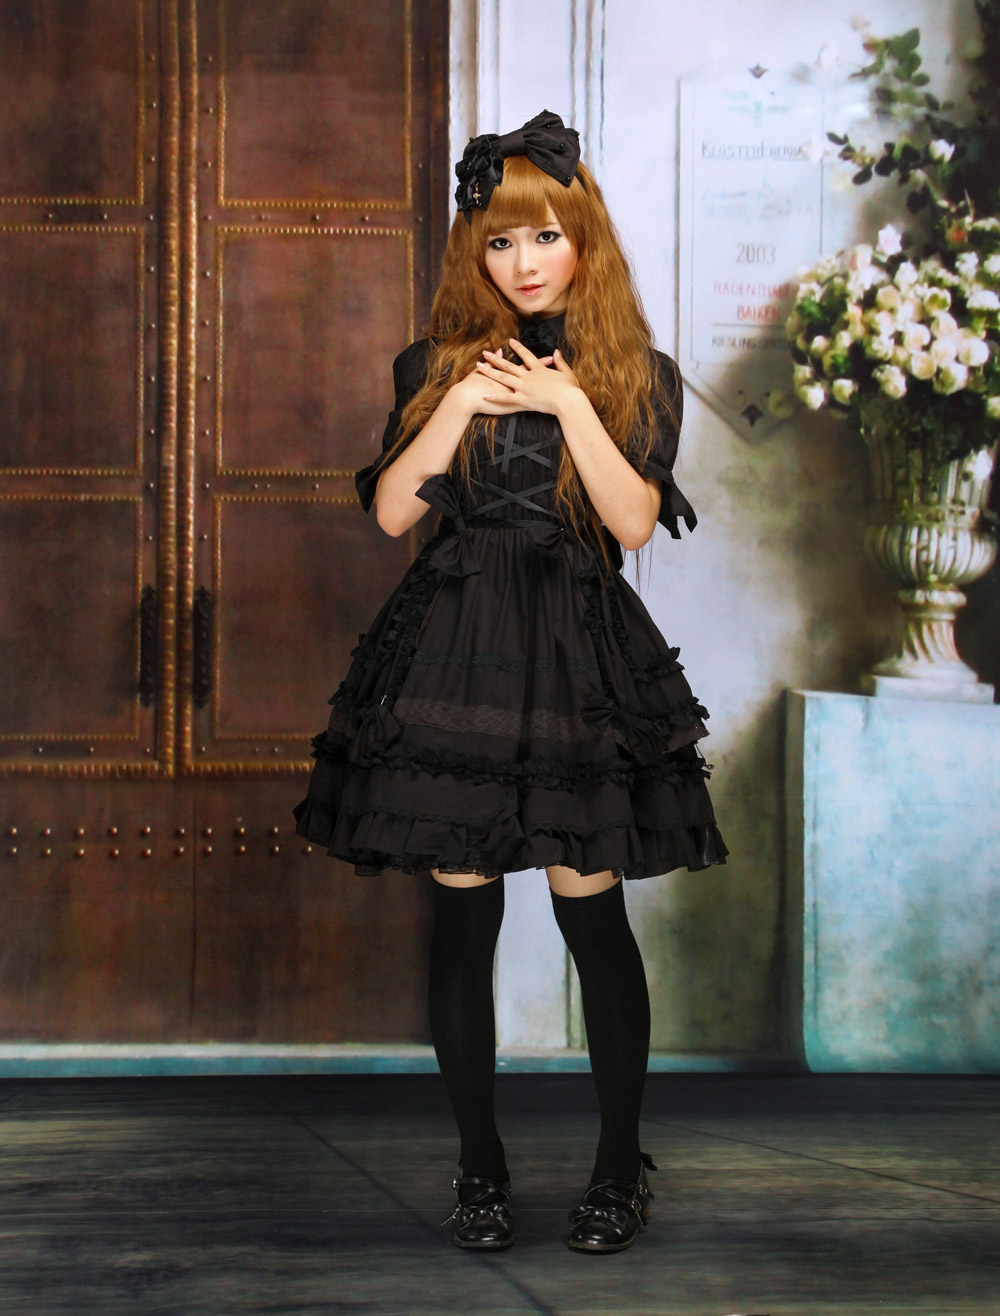 Buy Gothic Lolita Dress OP Black Short Sleeves Shirring Lace Up Ruffles Bows Cotton Lolita One Piece Dress for $78.29 in Milanoo store